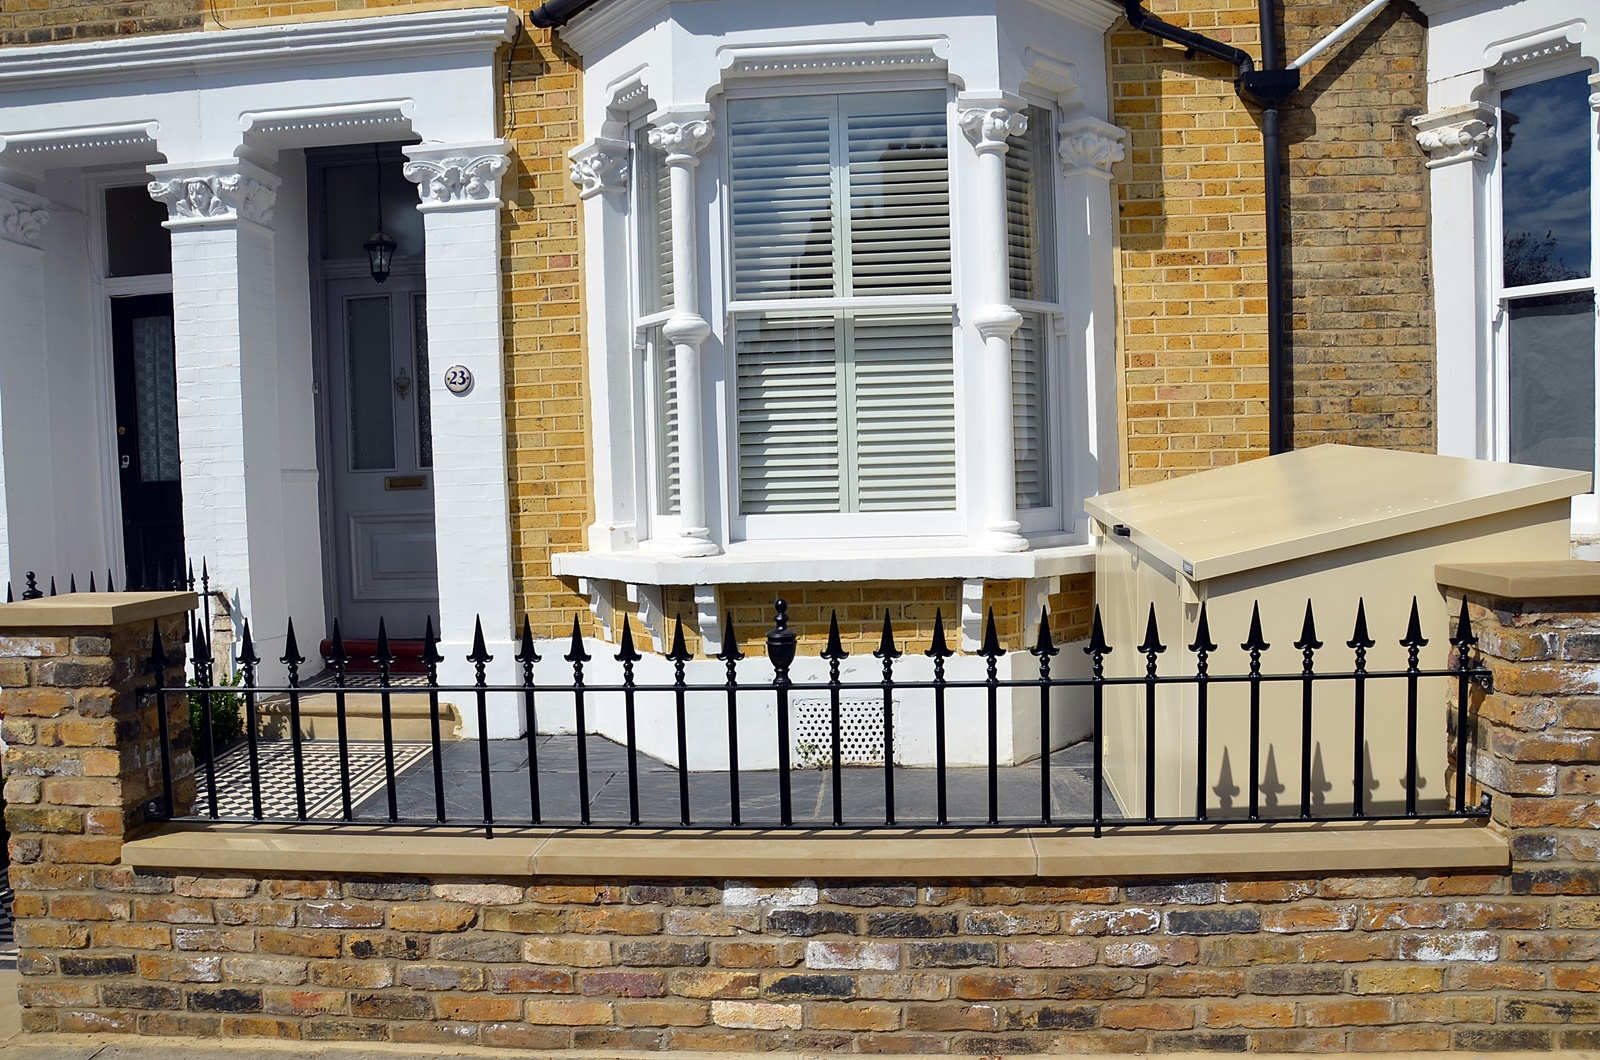 london brick wall yellow stock brick heavy metal rail and gate clapham balham streatham dulwich forest hill